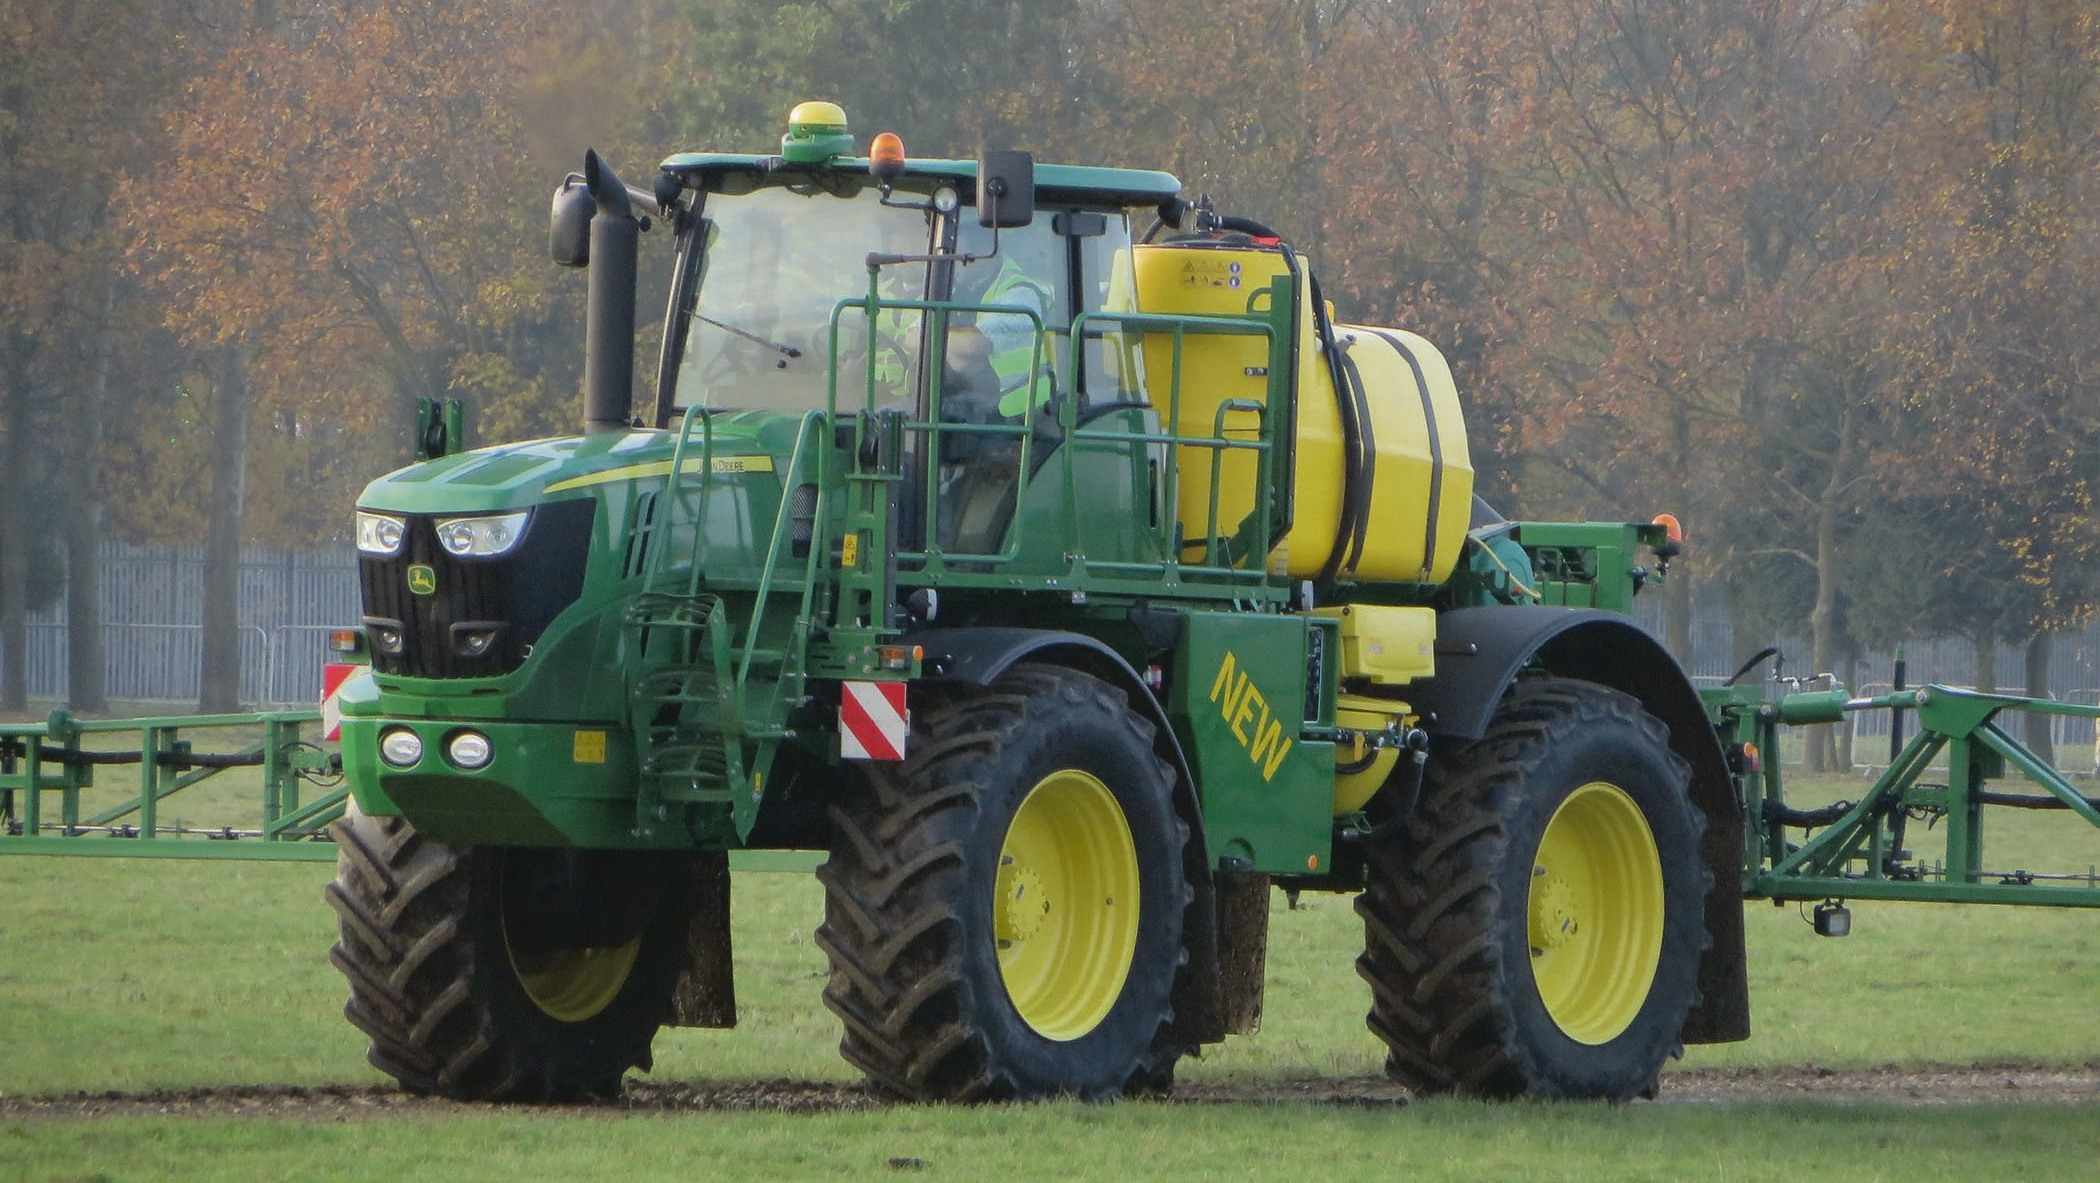 Sprayers & spreaders: Second generation sprayer builds on experience